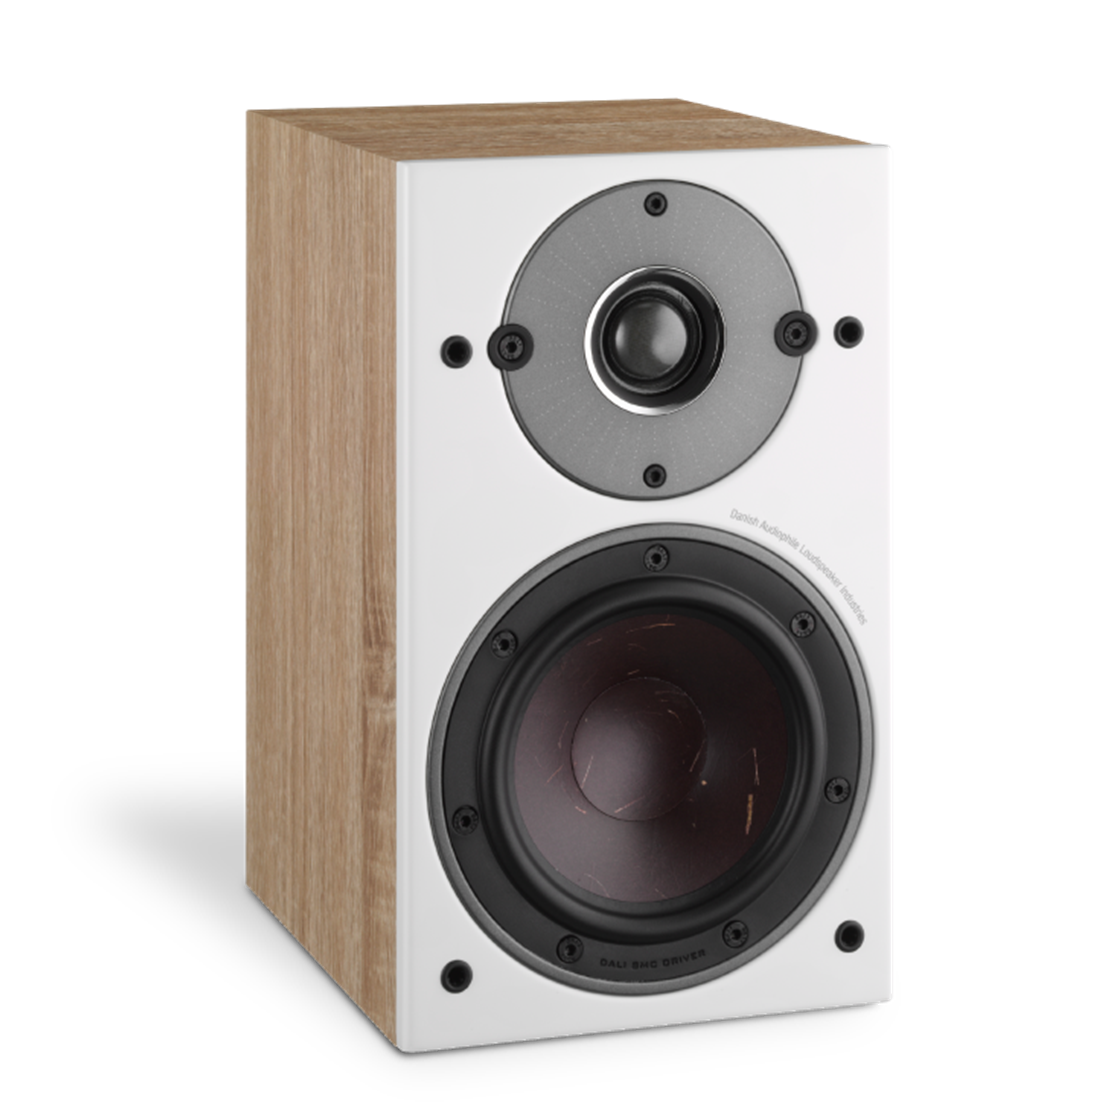 Browse DALI Hi-Fi loudspeaker reviews here